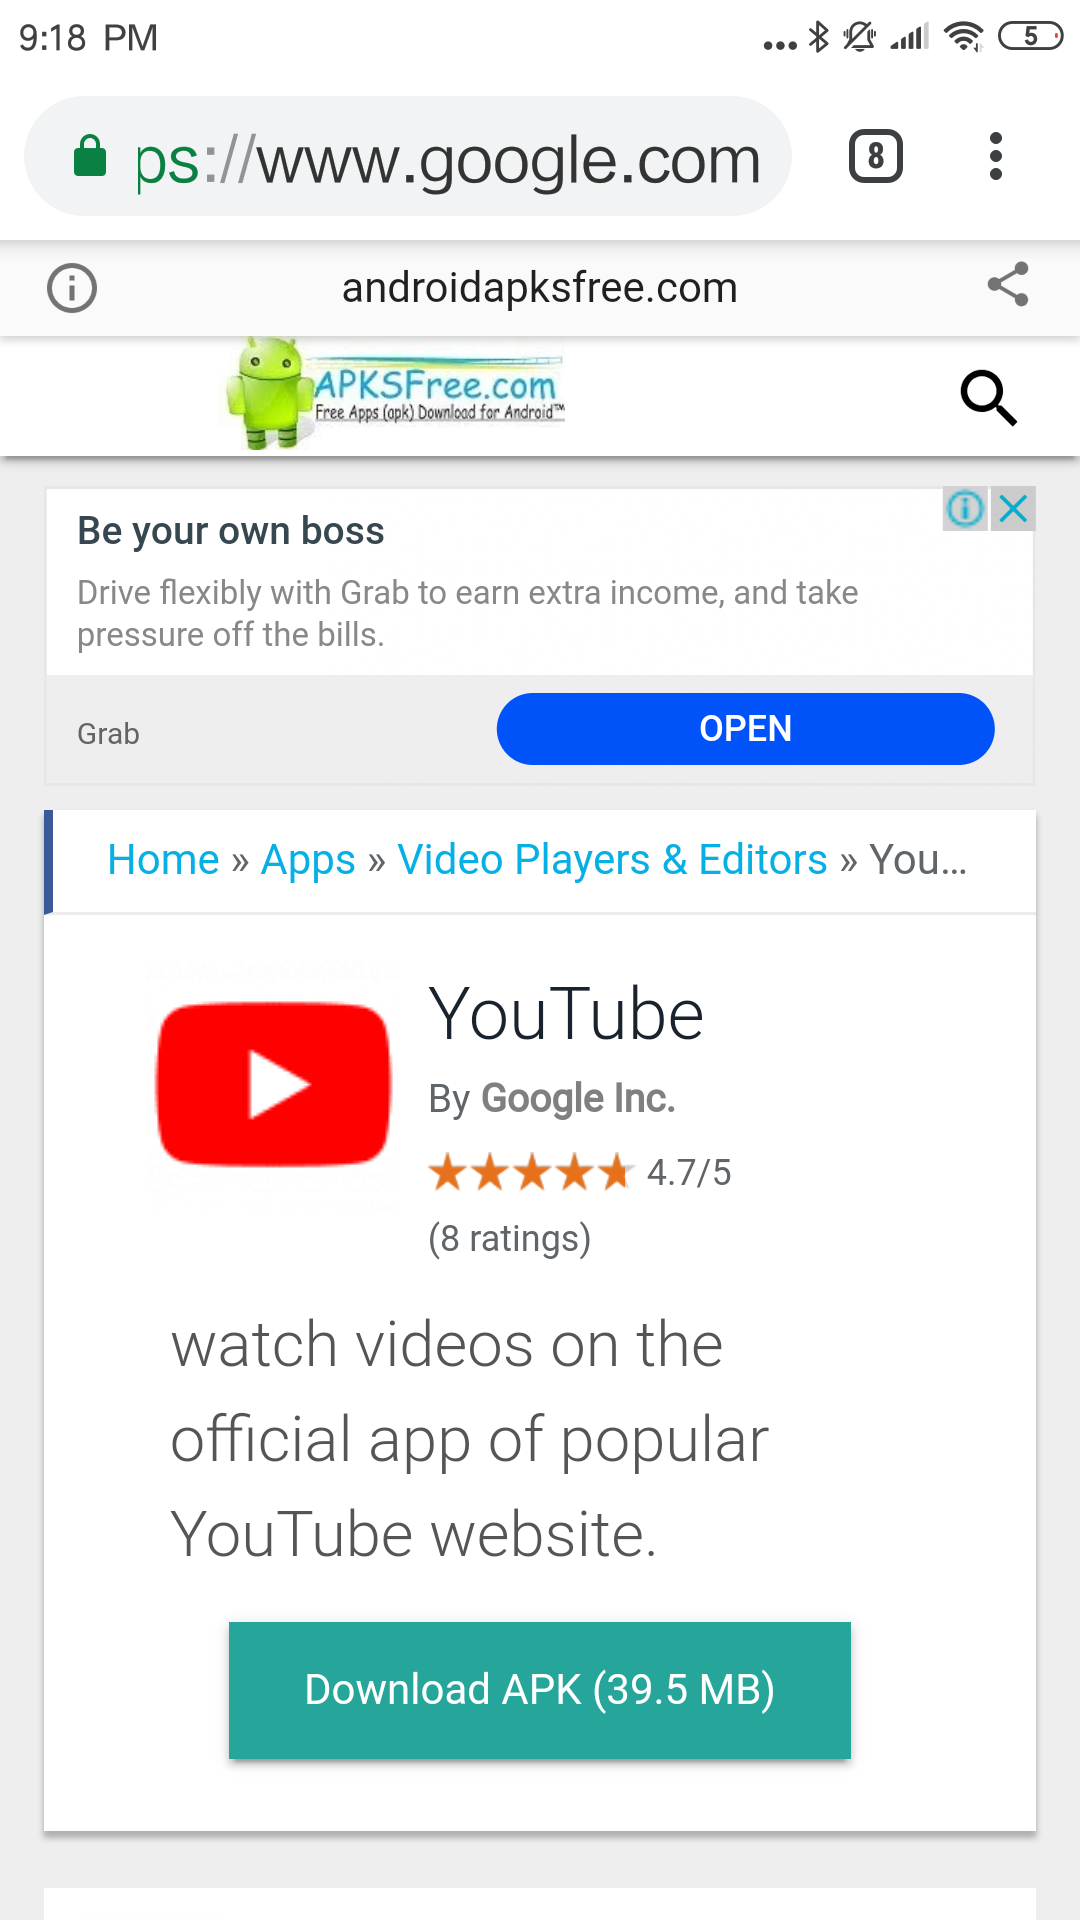 Why youtube is not compatible with my android device which